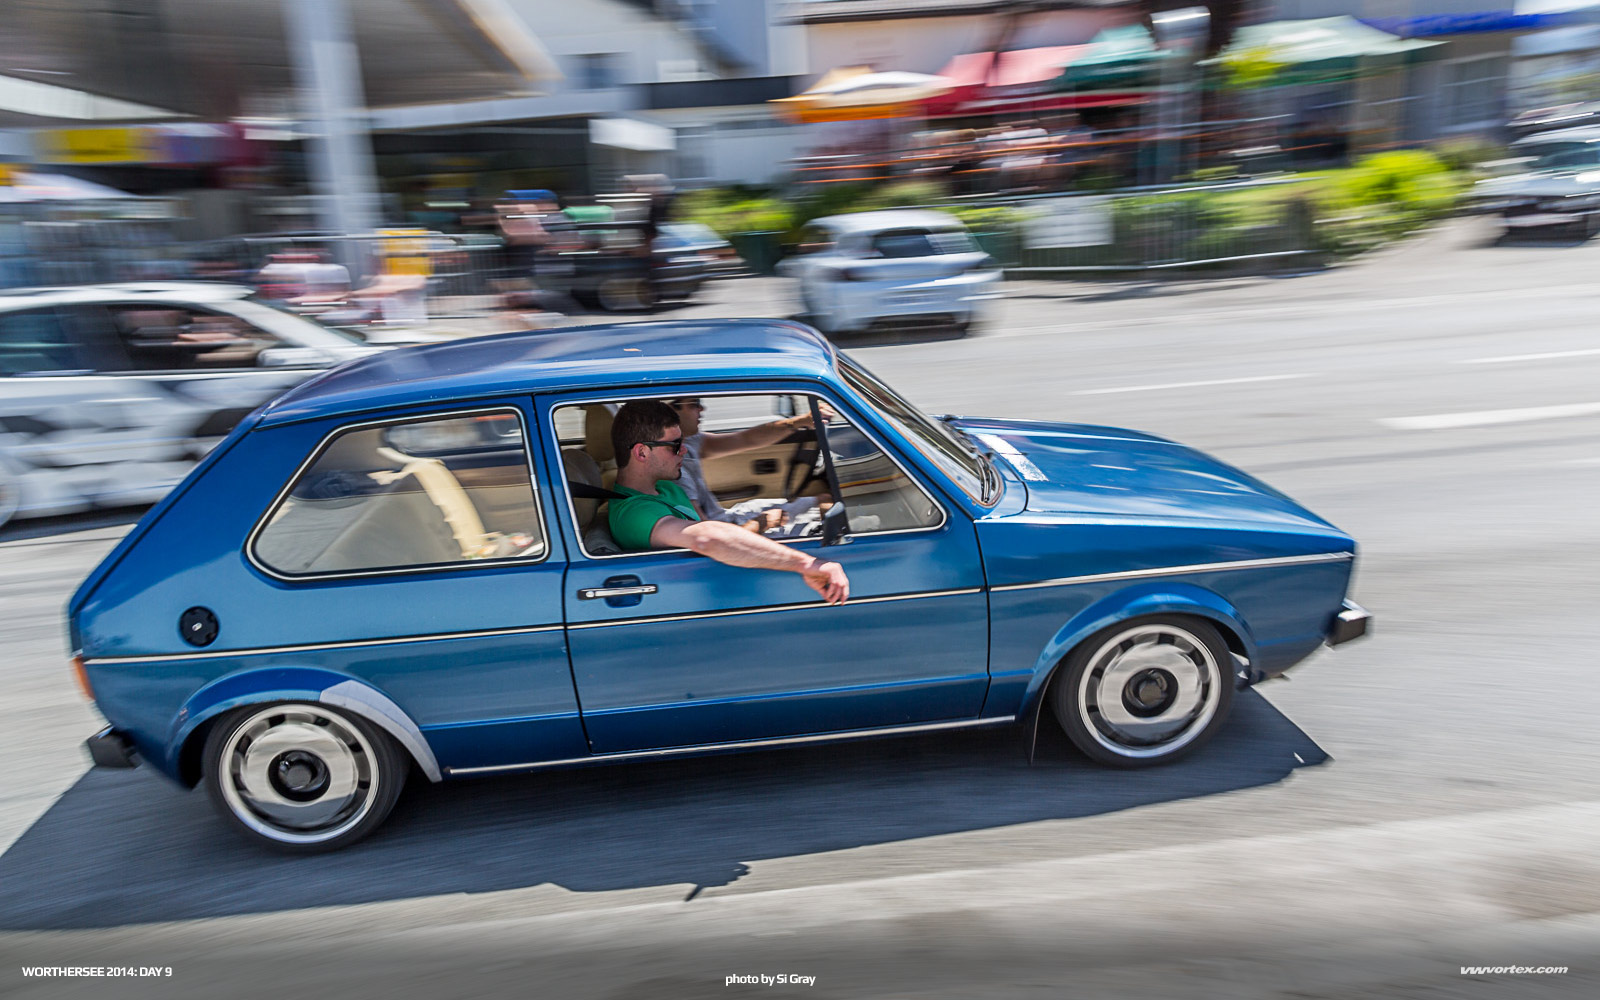 2014-Worthersee-Day-9-Si-Gray-396